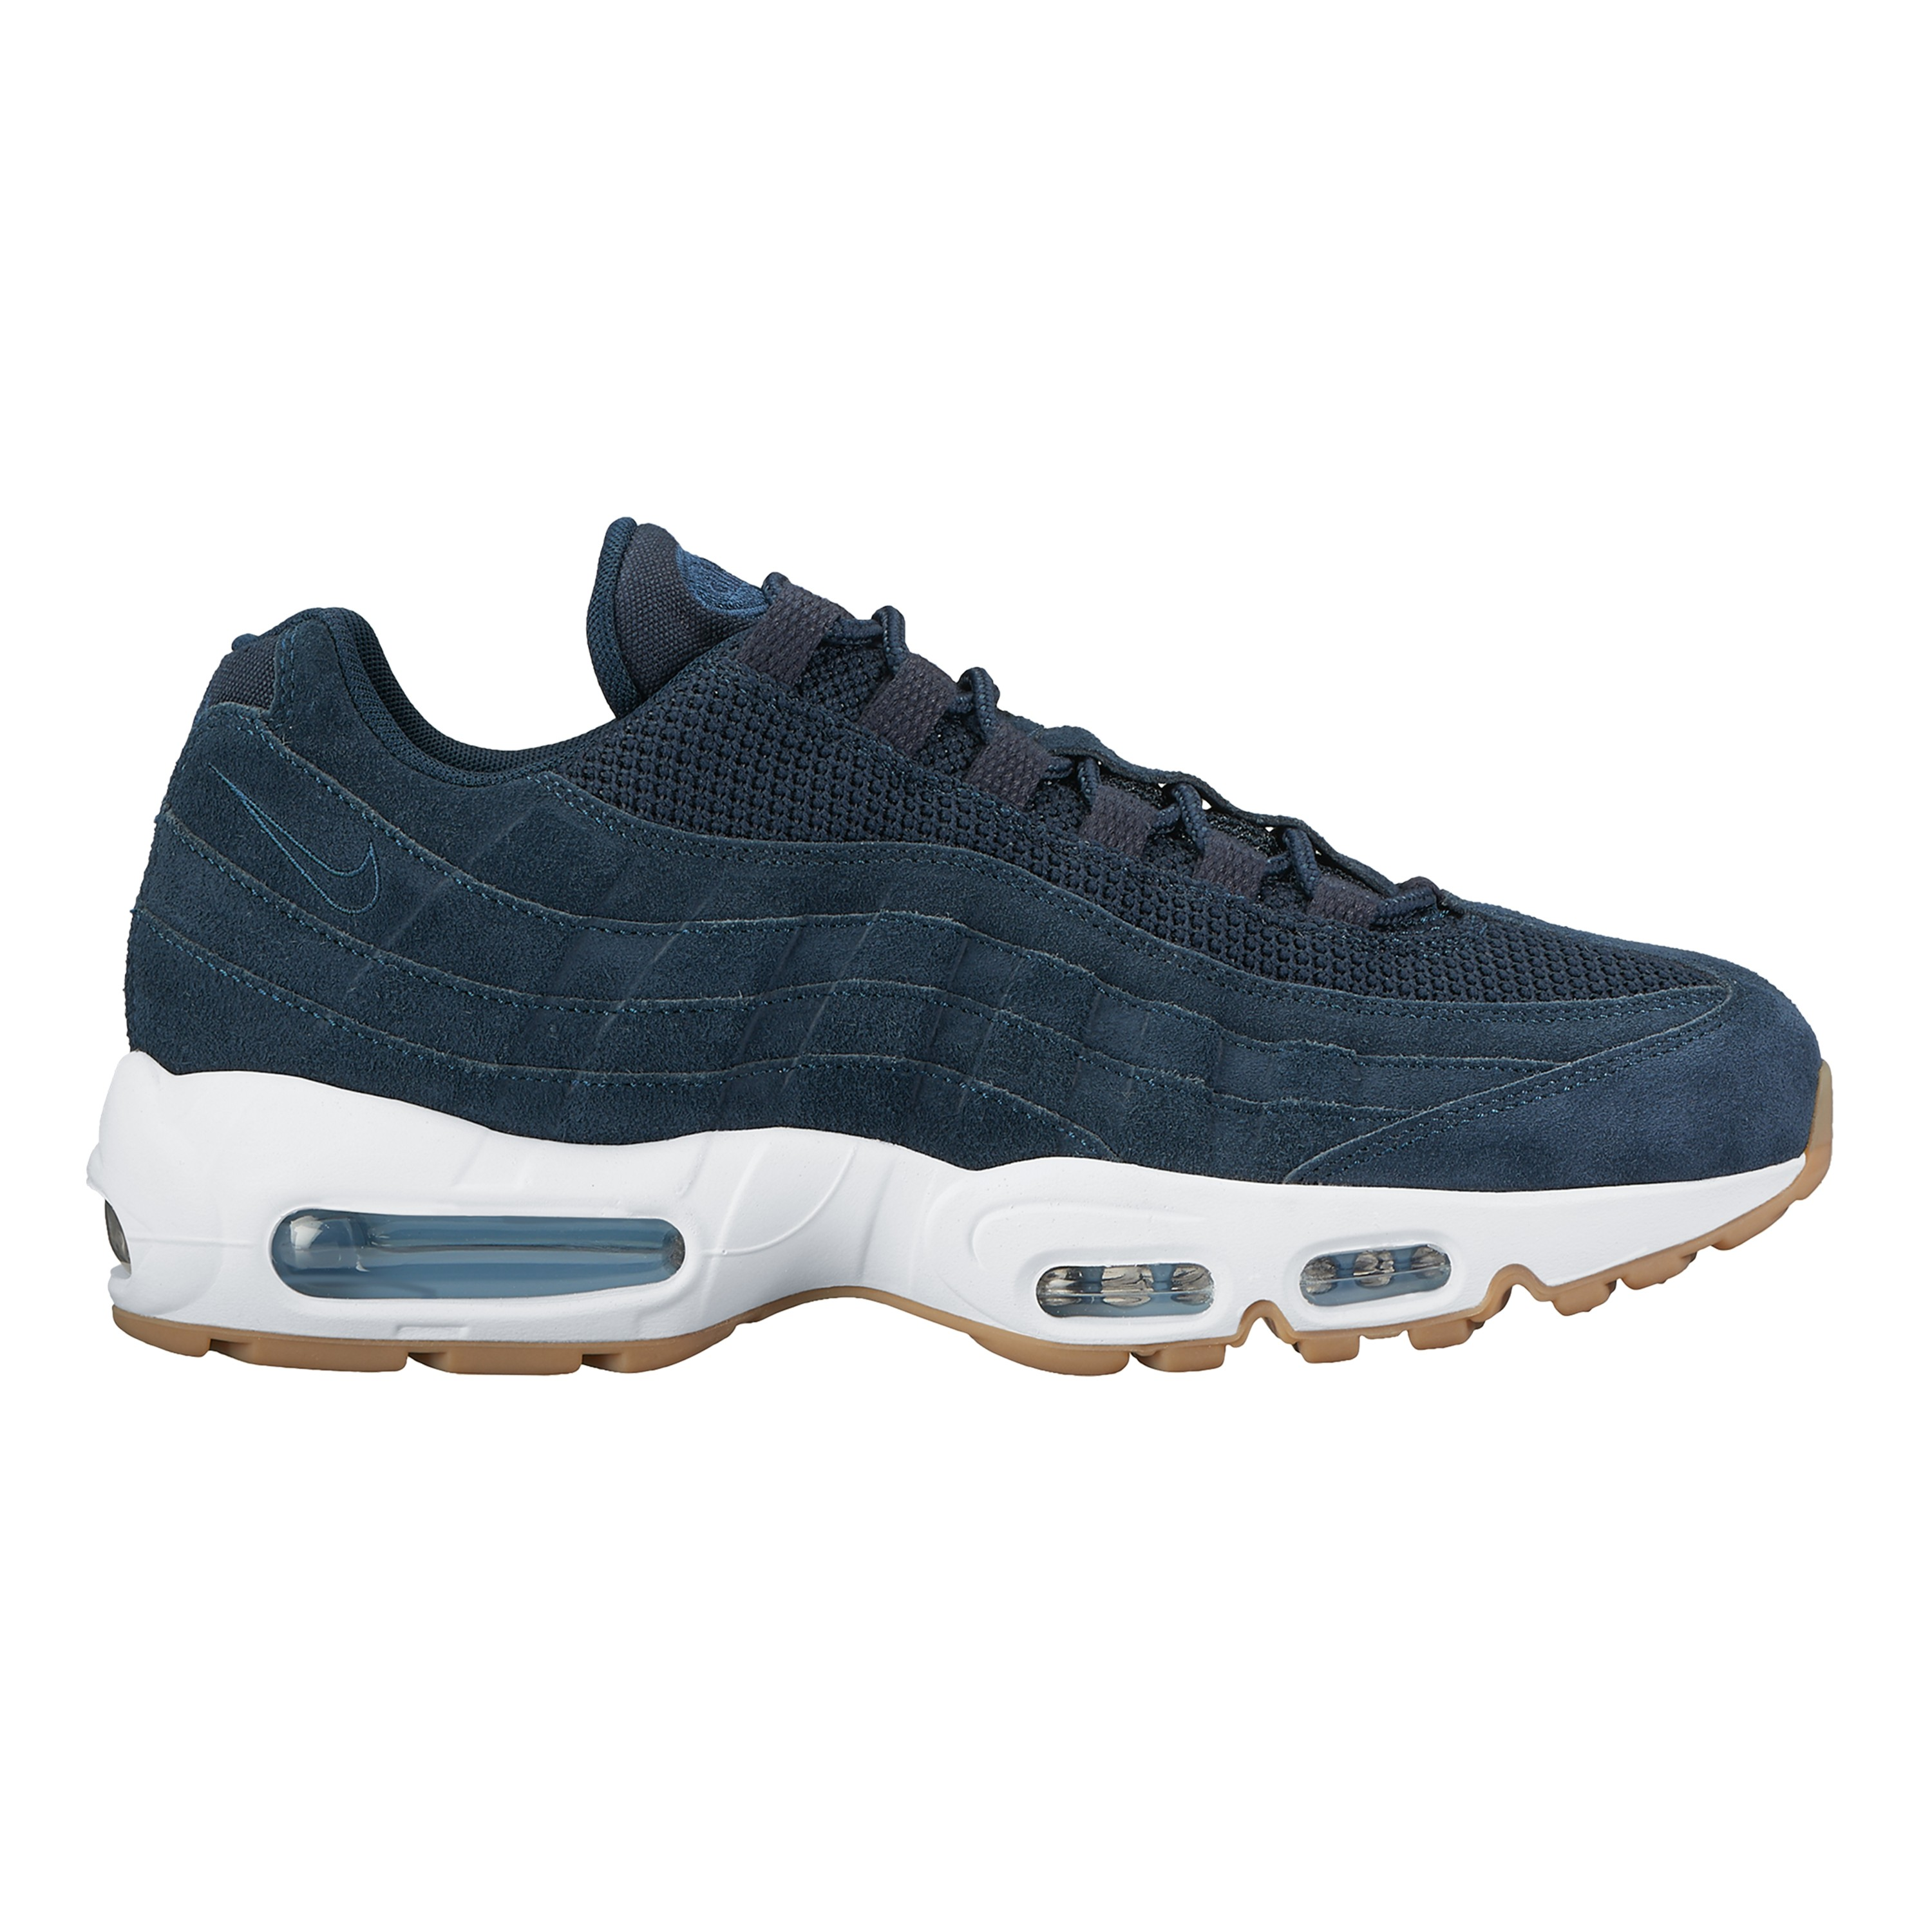 quality design 6a52b 2d875 nike air max 95 navy blue